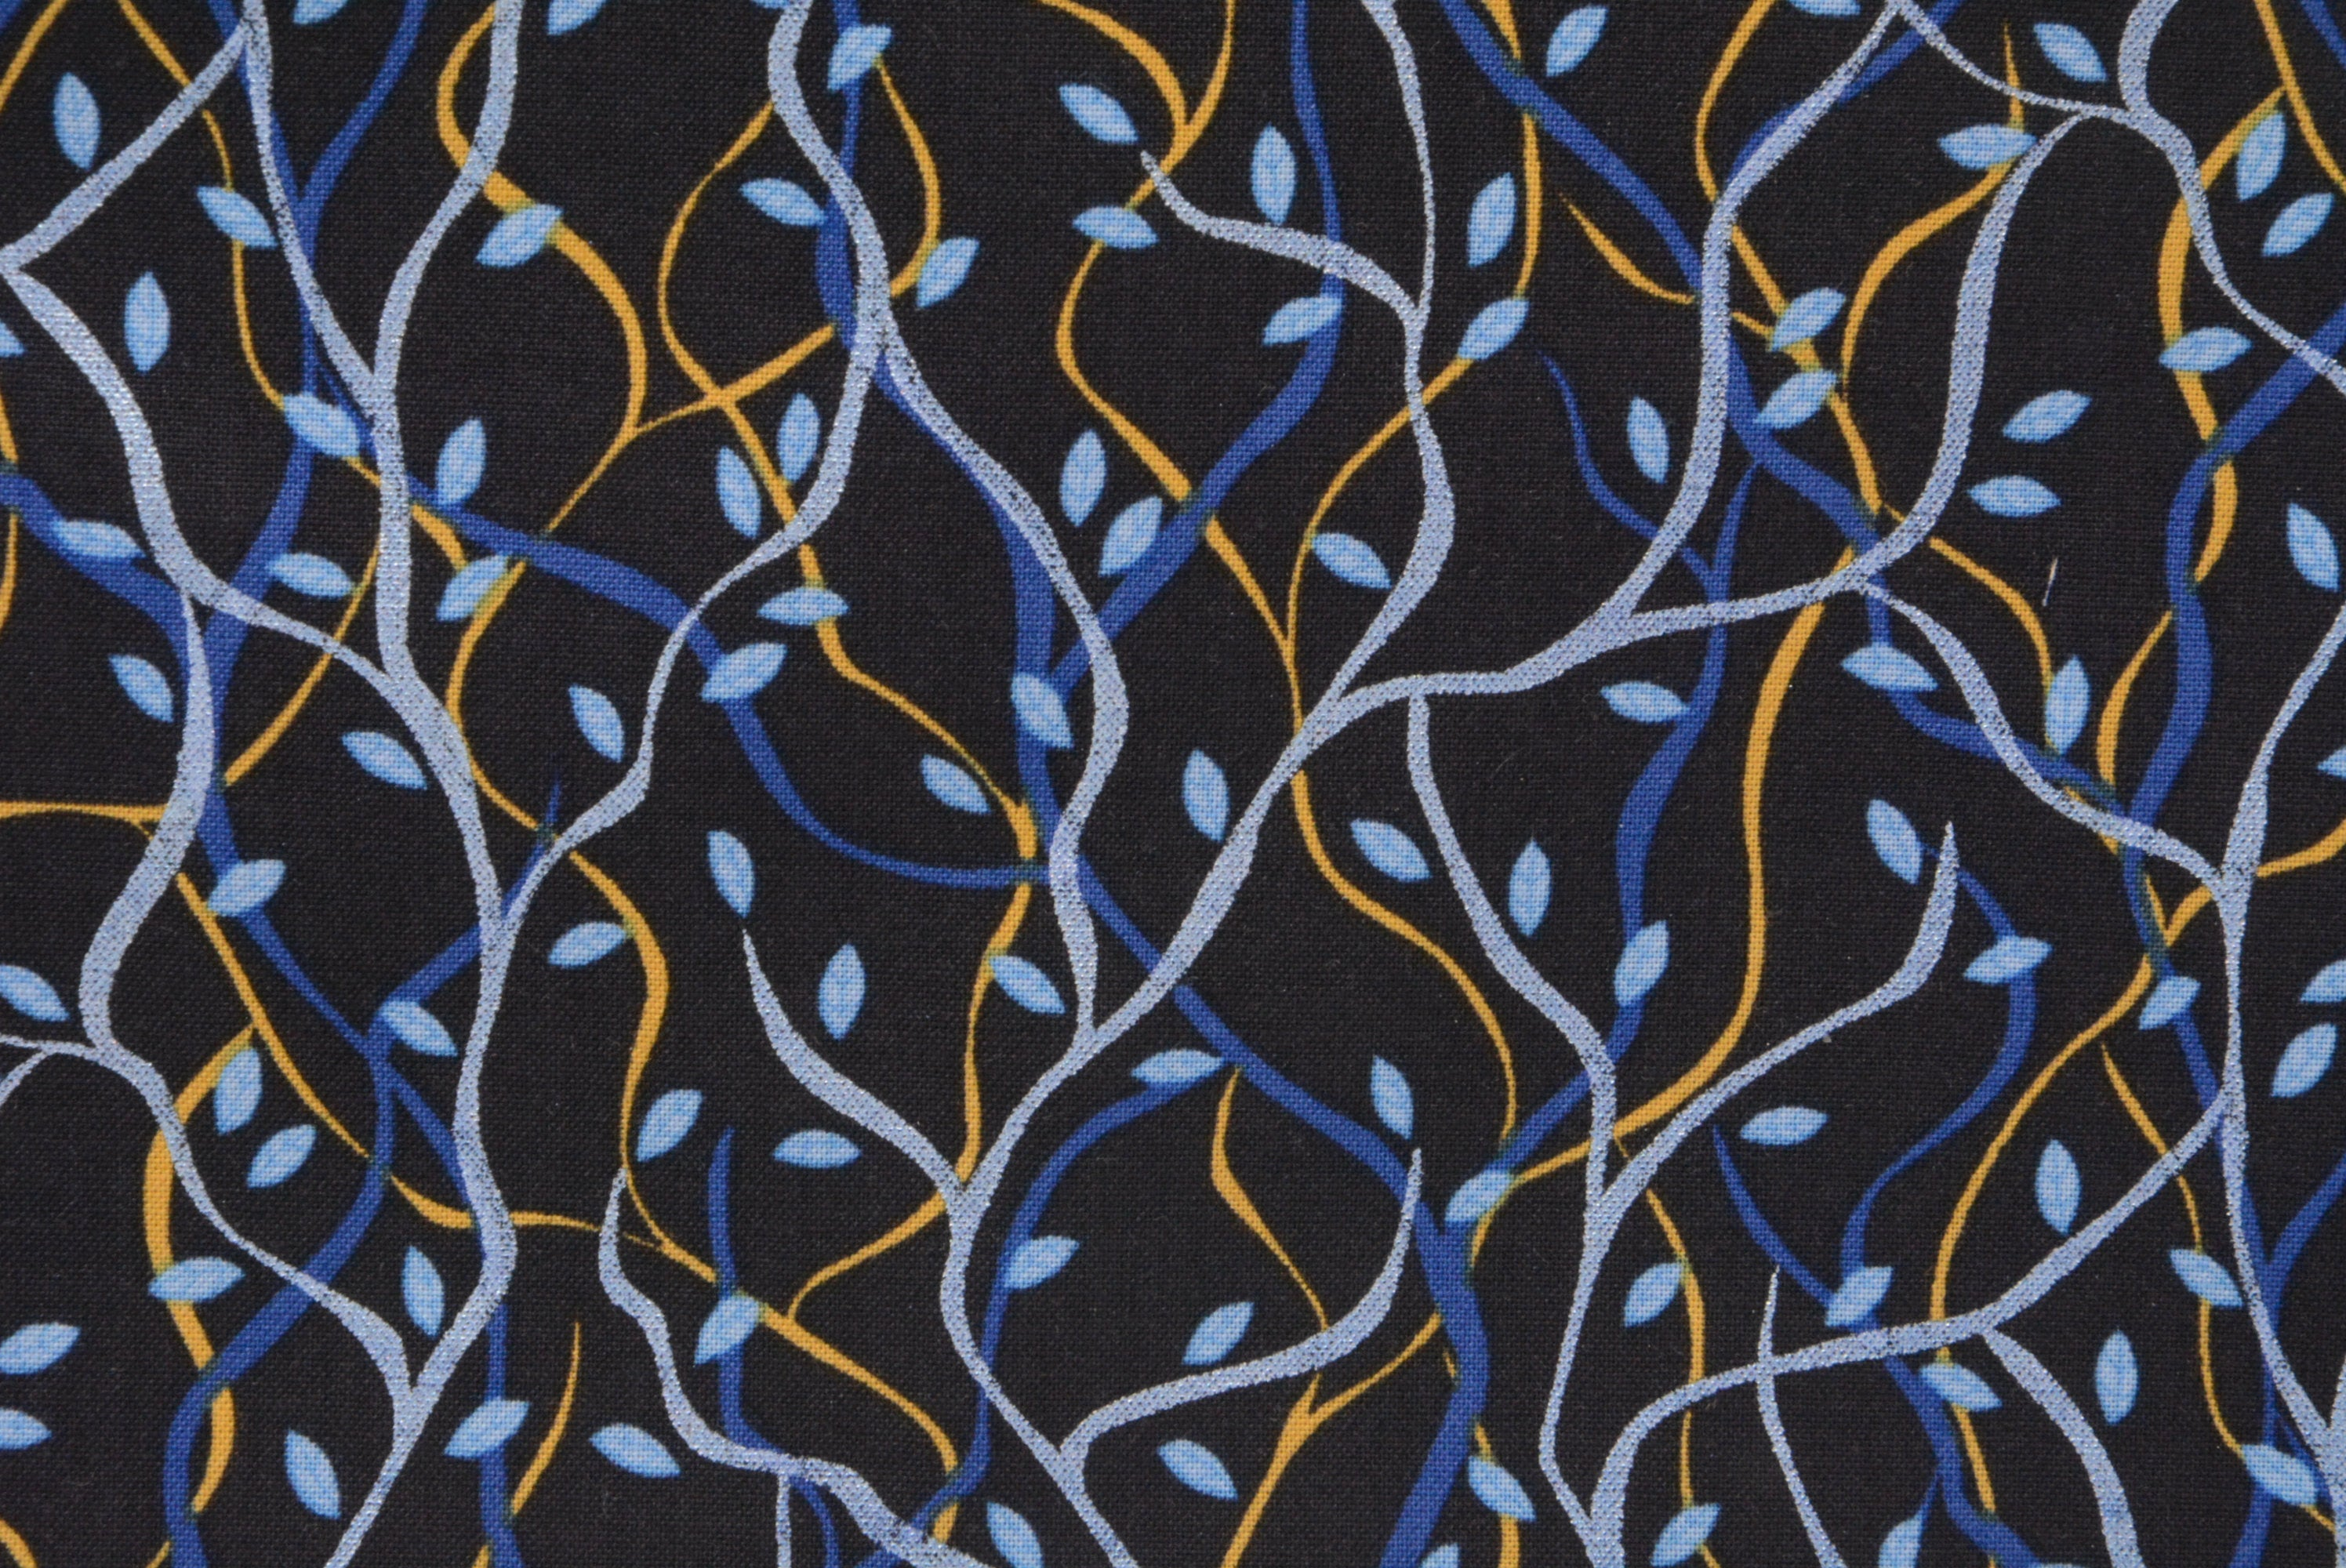 Willow - Dark Blue - *Metallic Print*